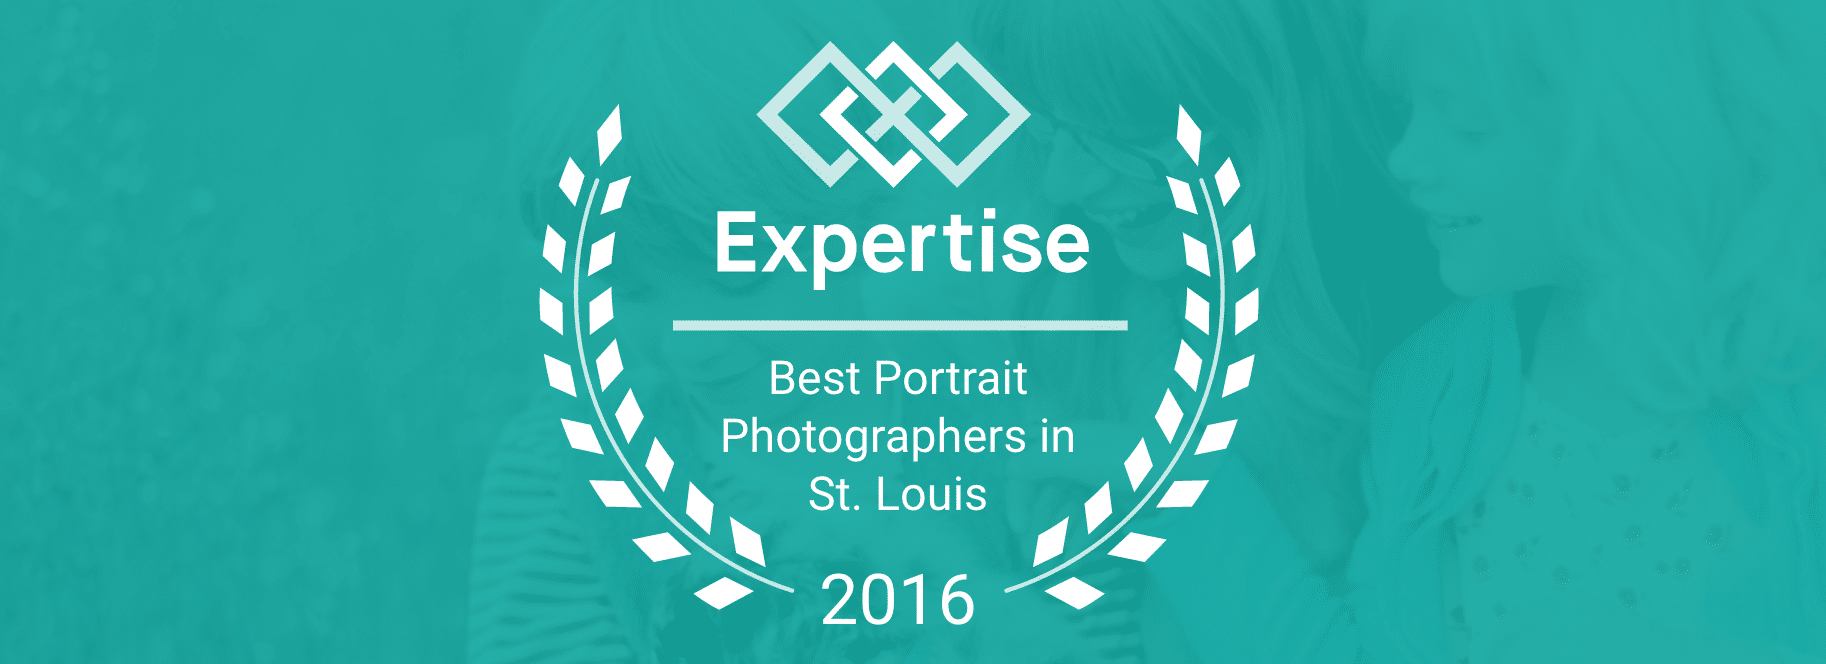 Expertise 2016 Best St. Louis Portrait Photographer List